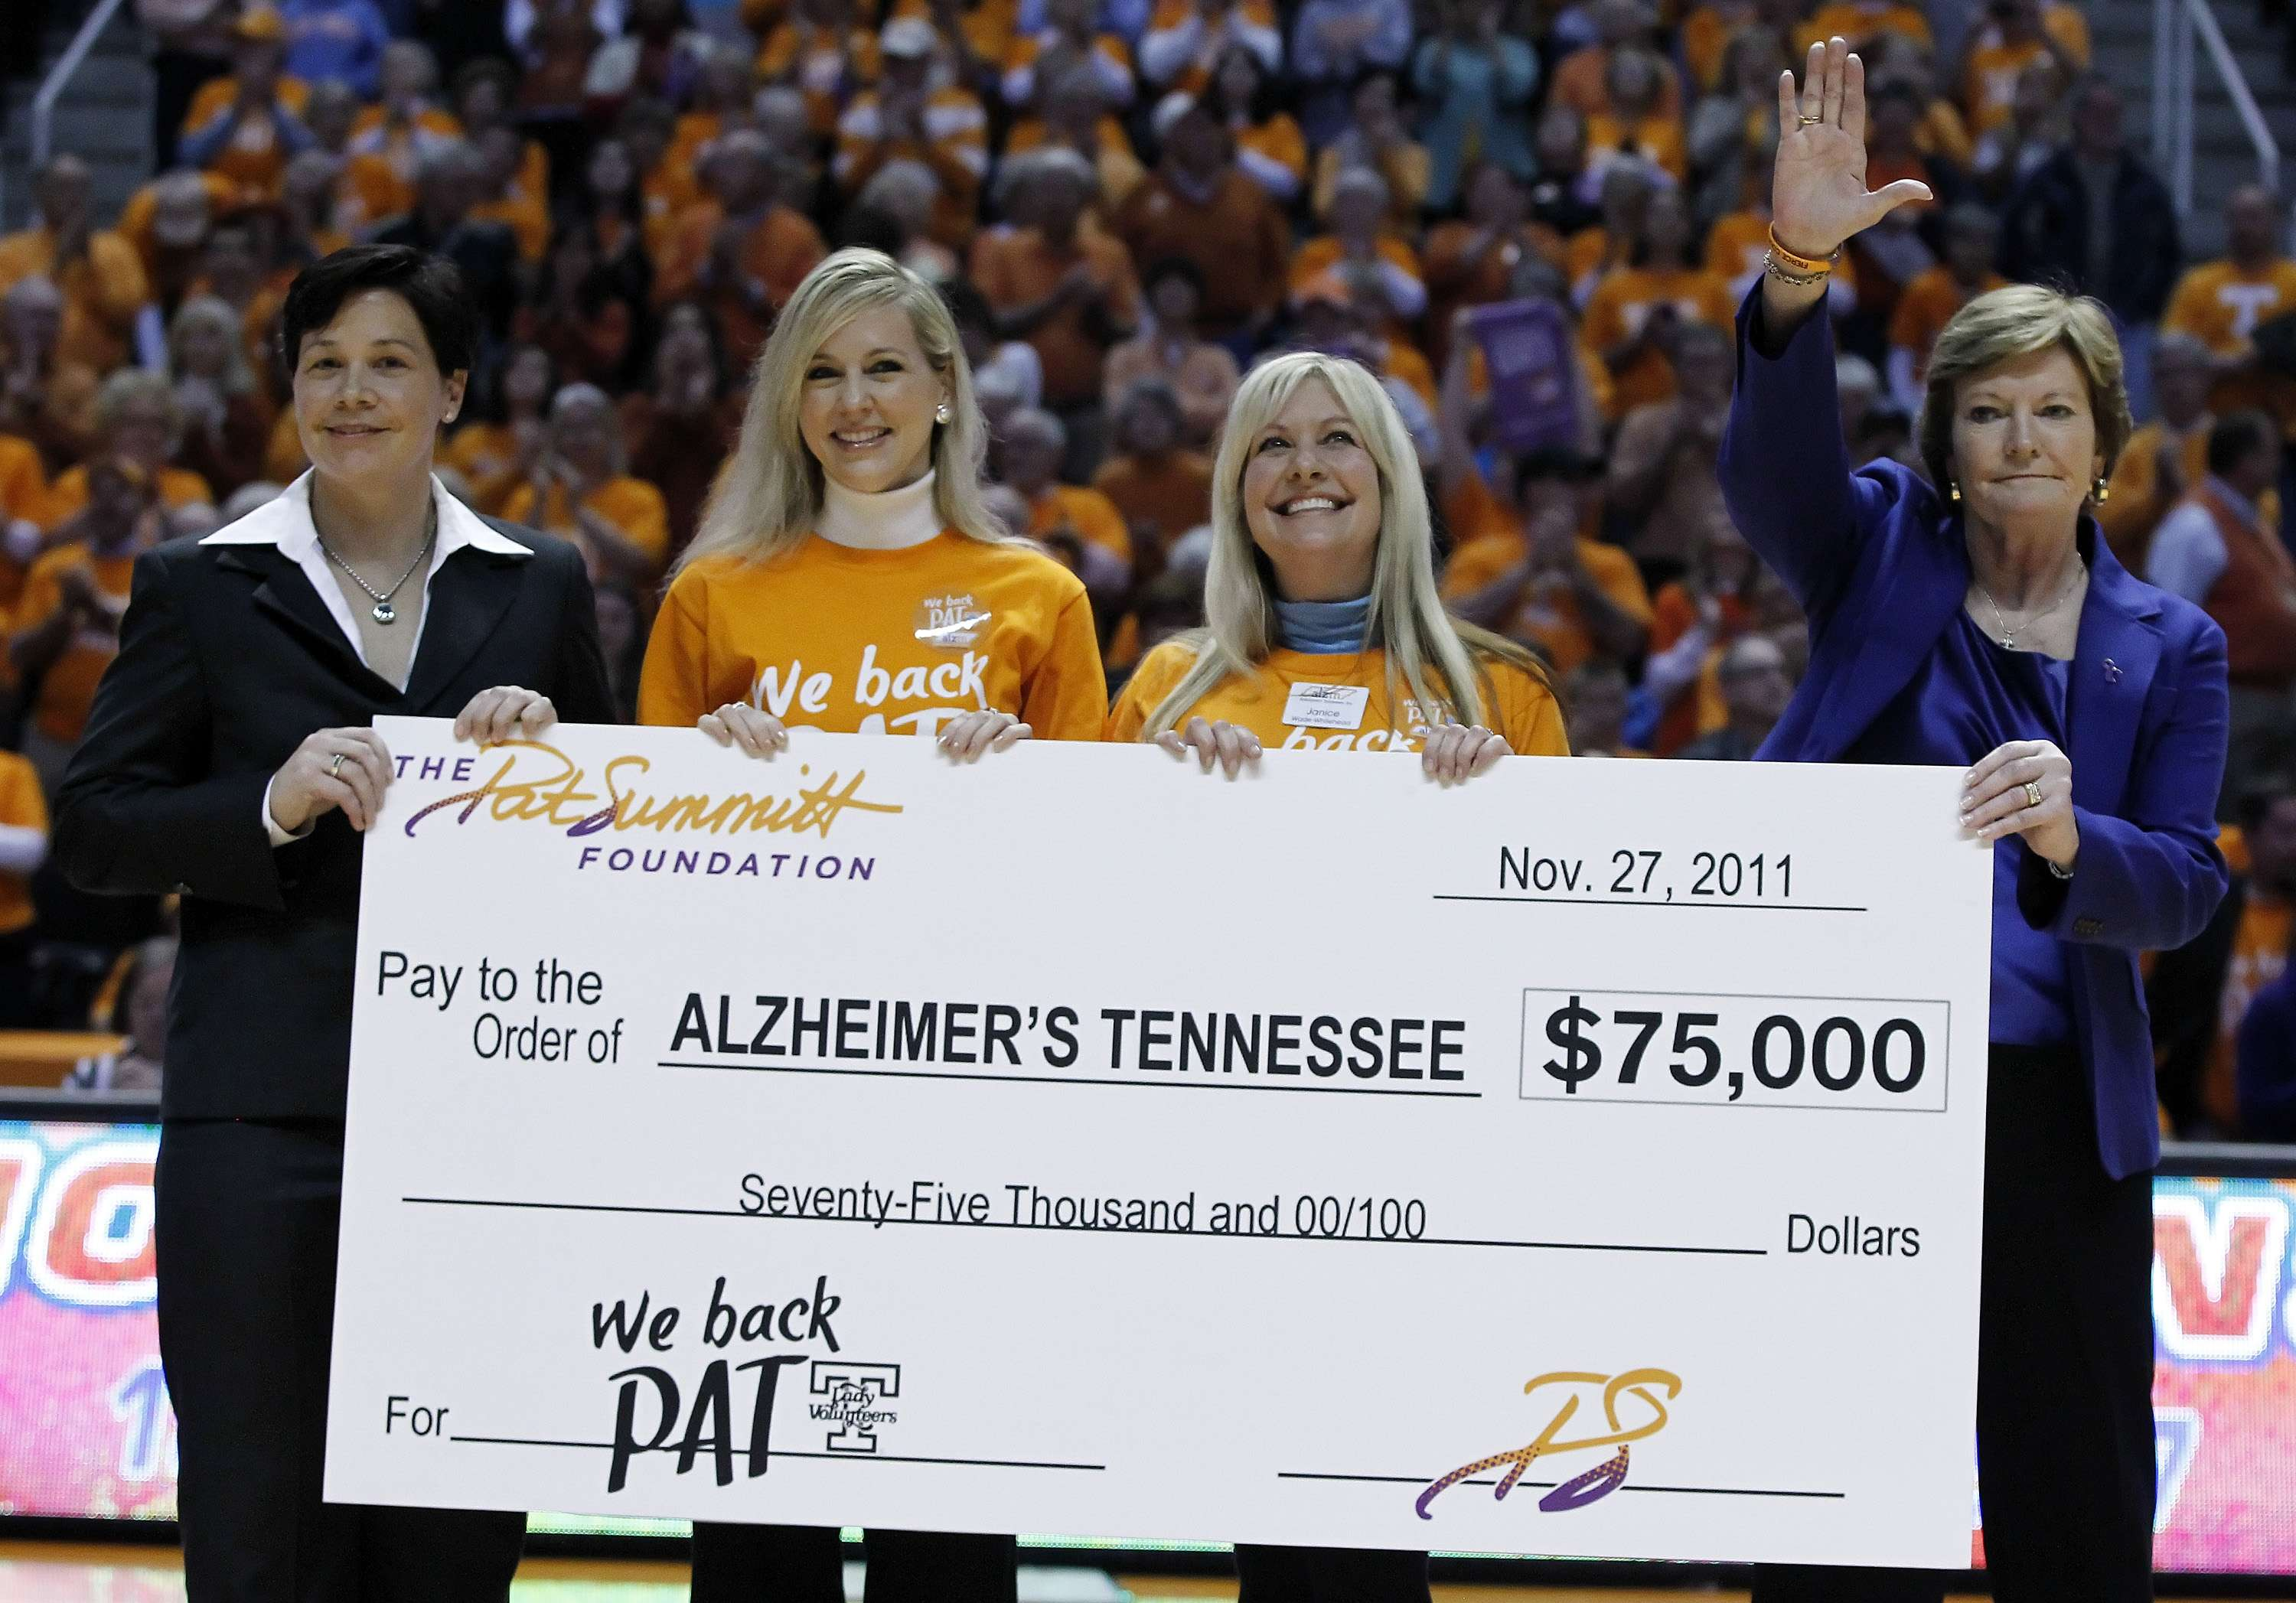 A check for $75,000.00 is presented by The Pat Summitt Foundation Fund to Alzheimer's Tennessee at the Baylor versus Tennessee game on November 27, 2011. From left to right: Danielle Donehew, Alzheimer's Tennessee representatives and Pat Summitt. Photo courtesy of the Associated Press.